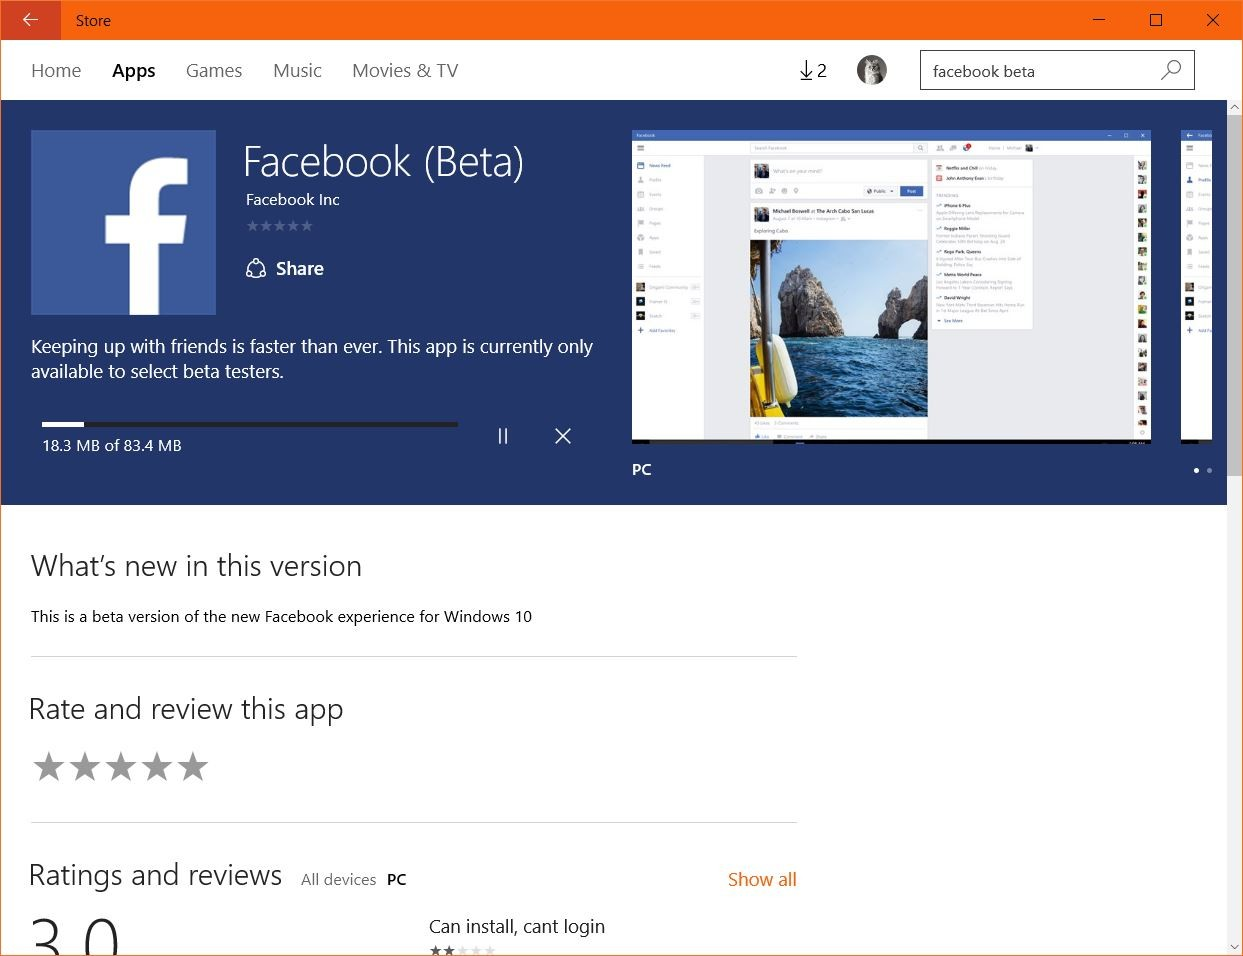 Facebook Beta for Windows 10 Now Available in the Store